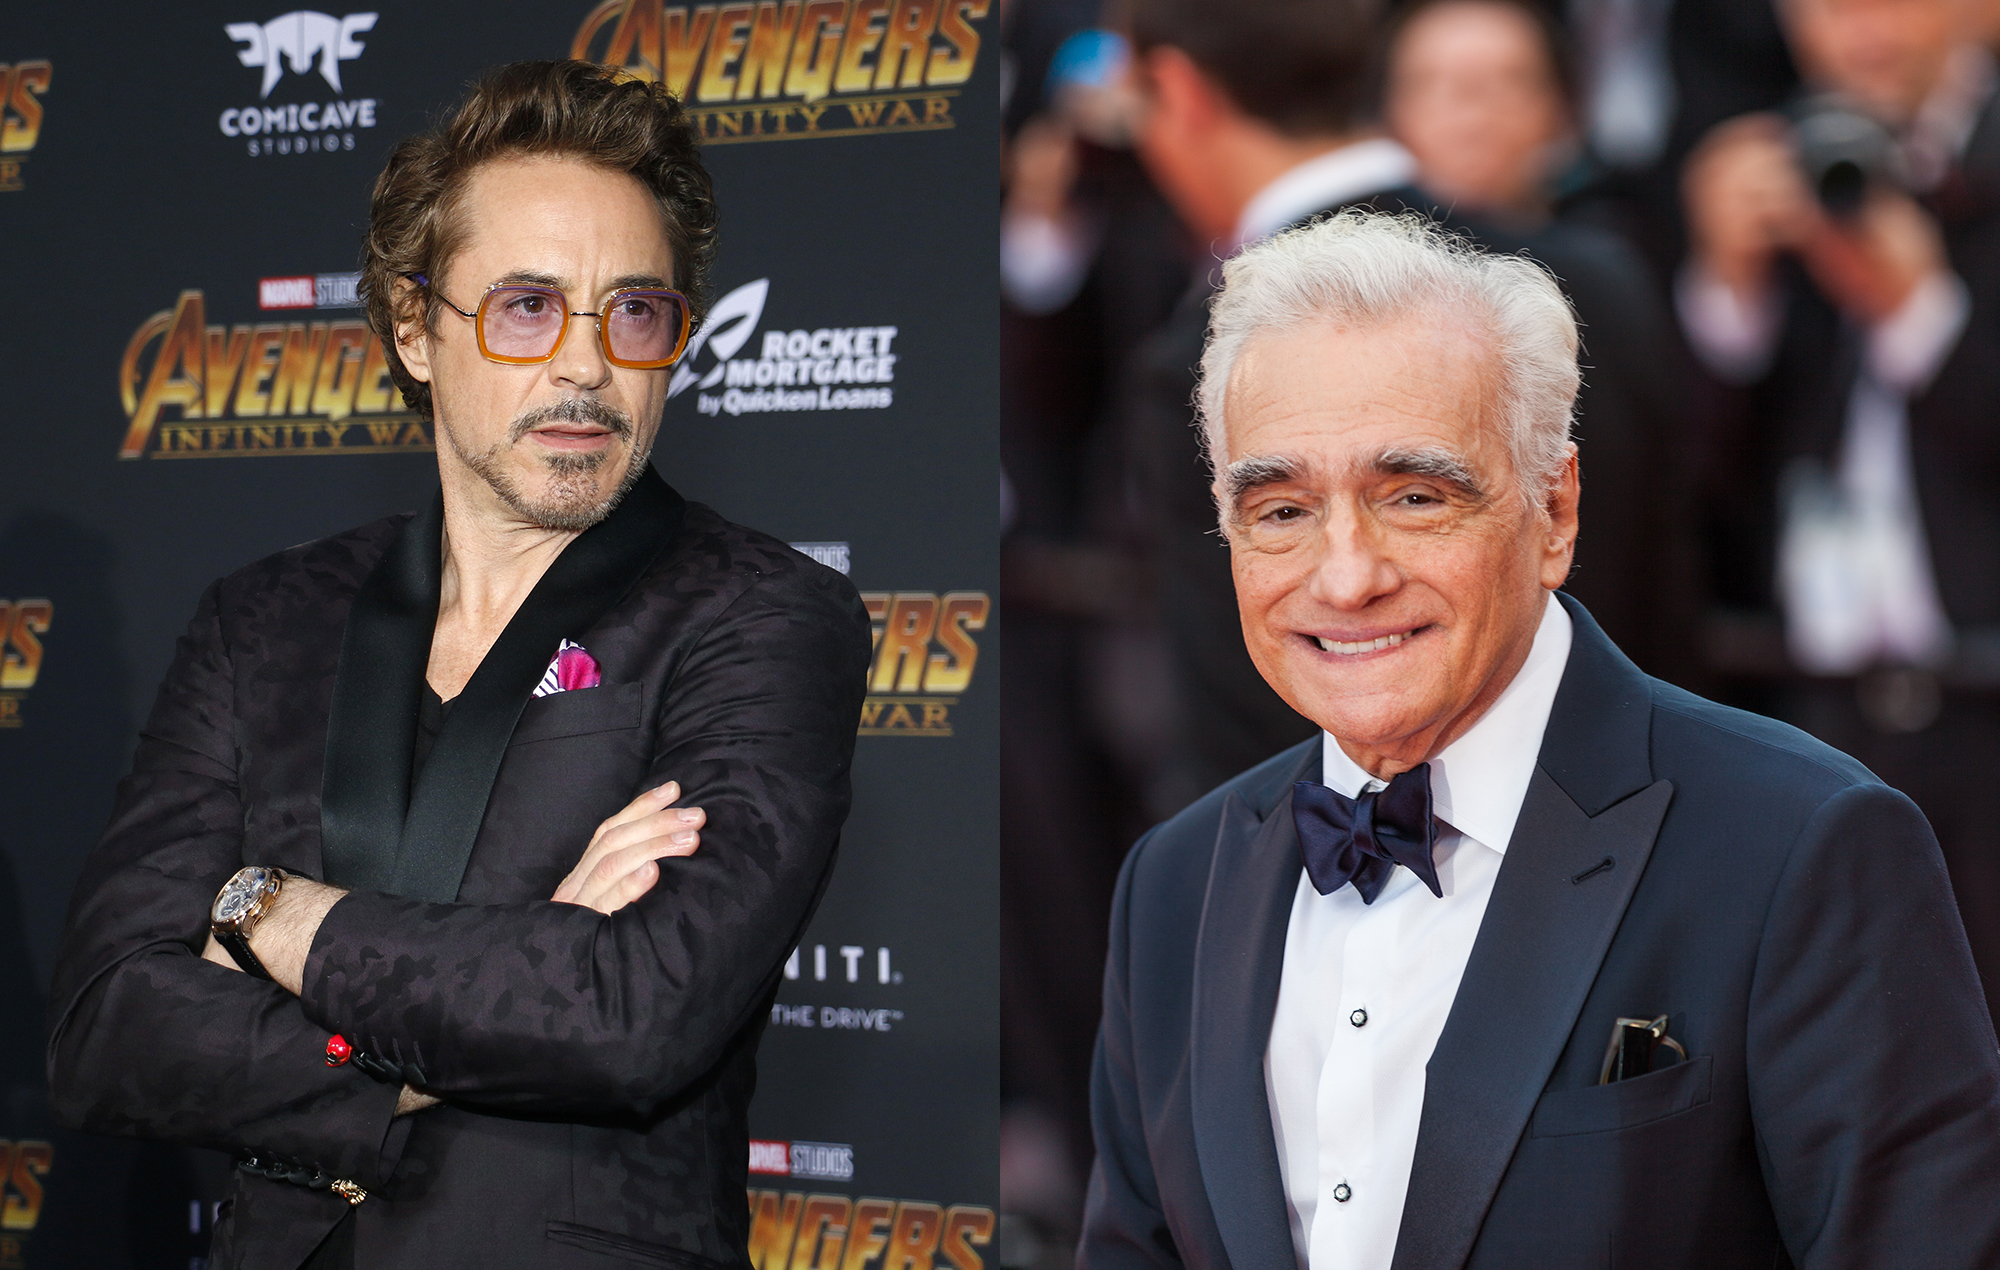 Robert Downey Jr. on Martin Scorseses criticism of Marvel movies: I appreciate his opinion